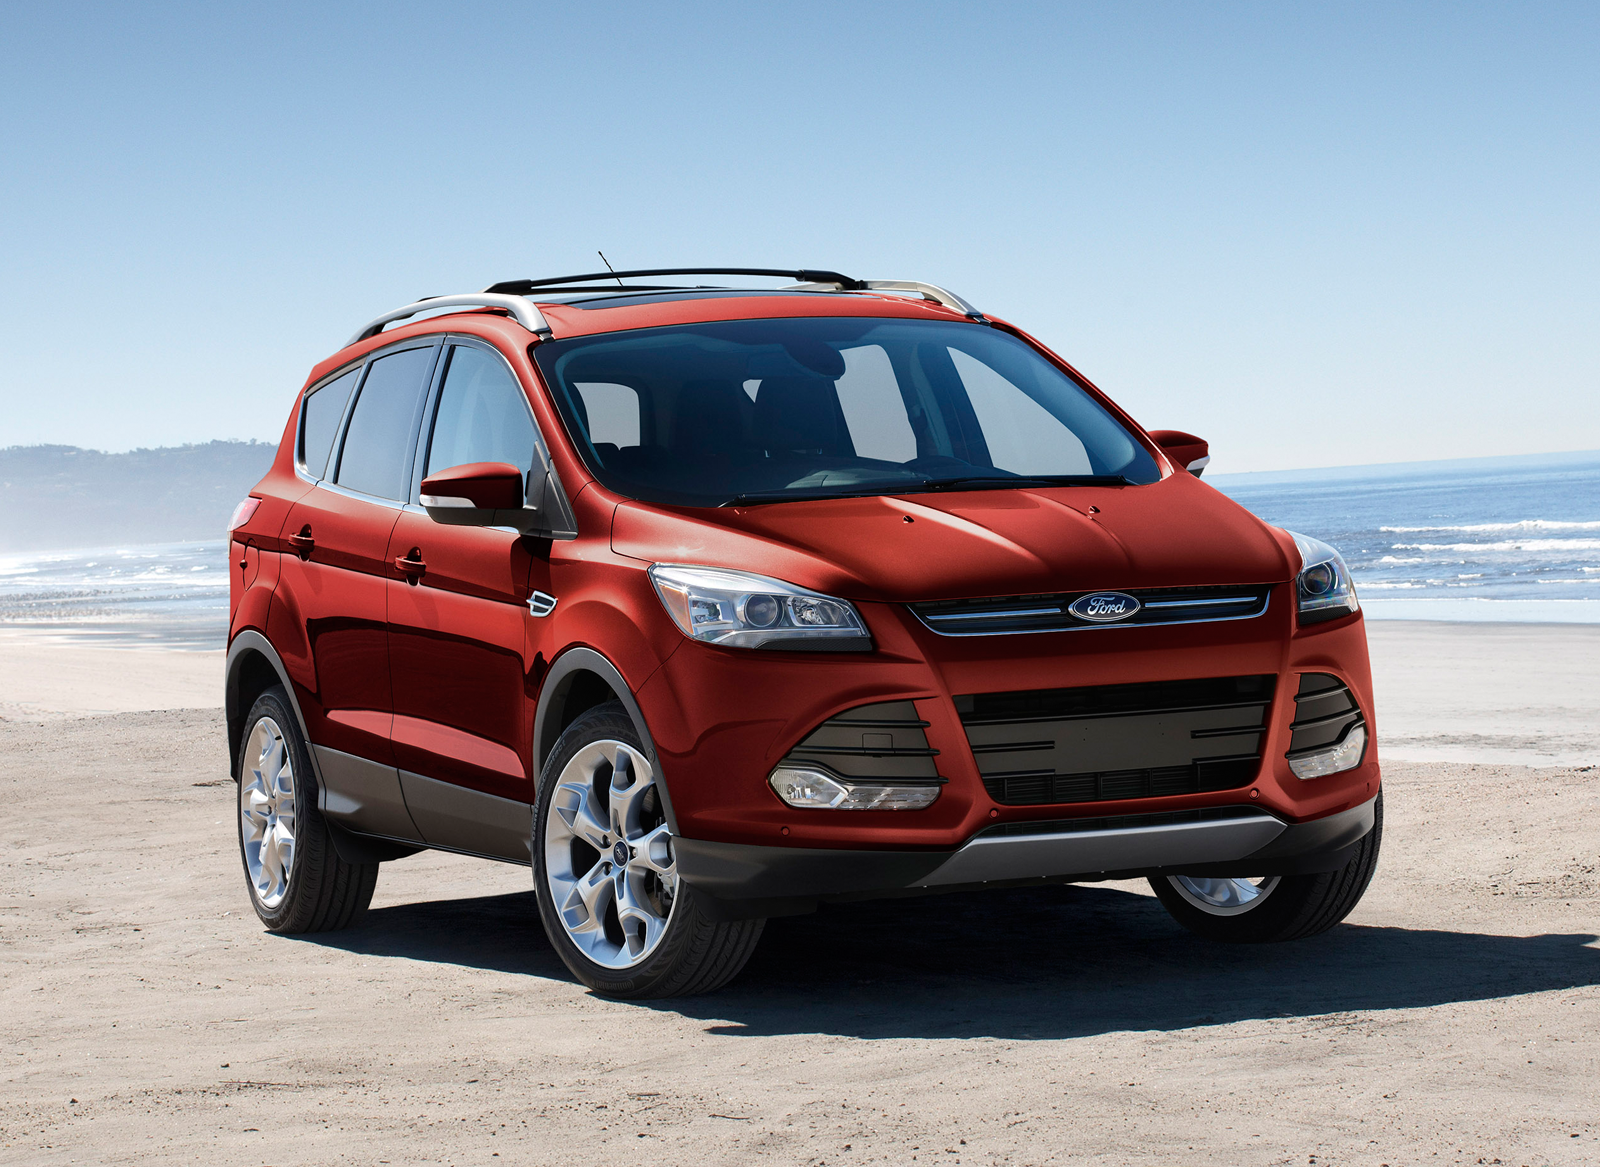 10 Top American Cars You Can Buy Consumer Reports